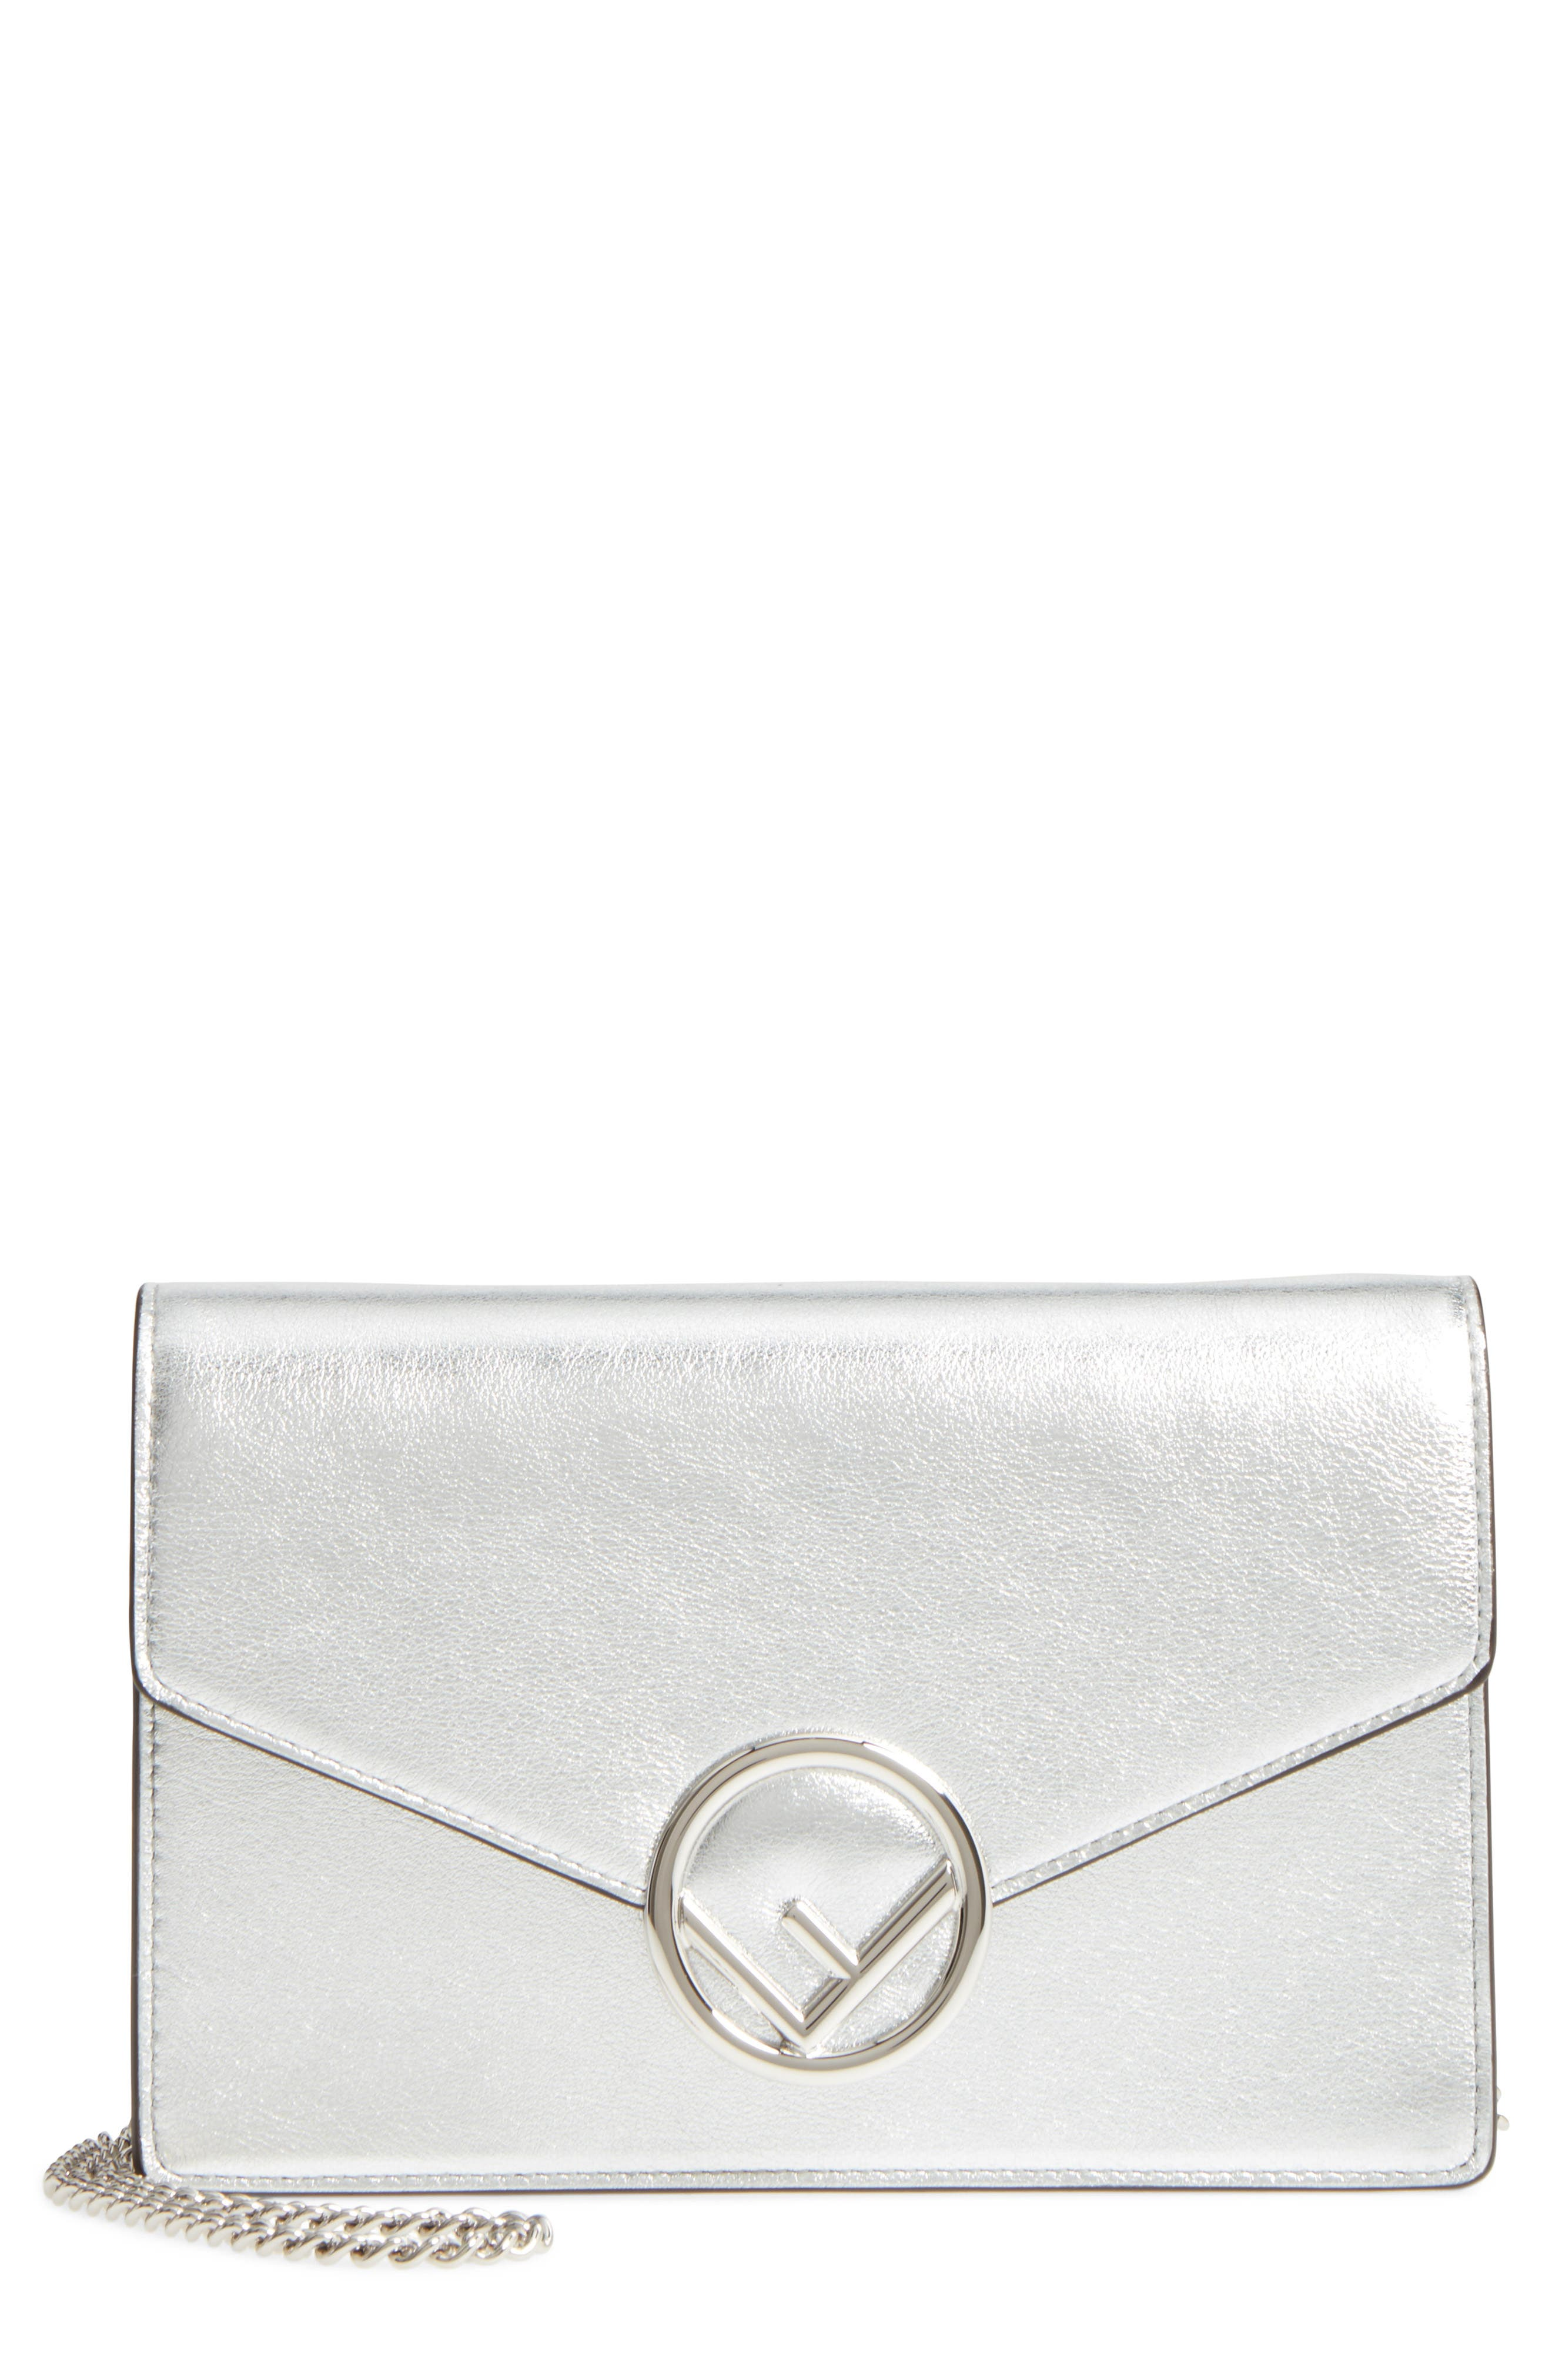 Liberty Logo Calfskin Leather Wallet on a Chain,                         Main,                         color, Silver/ Palladio